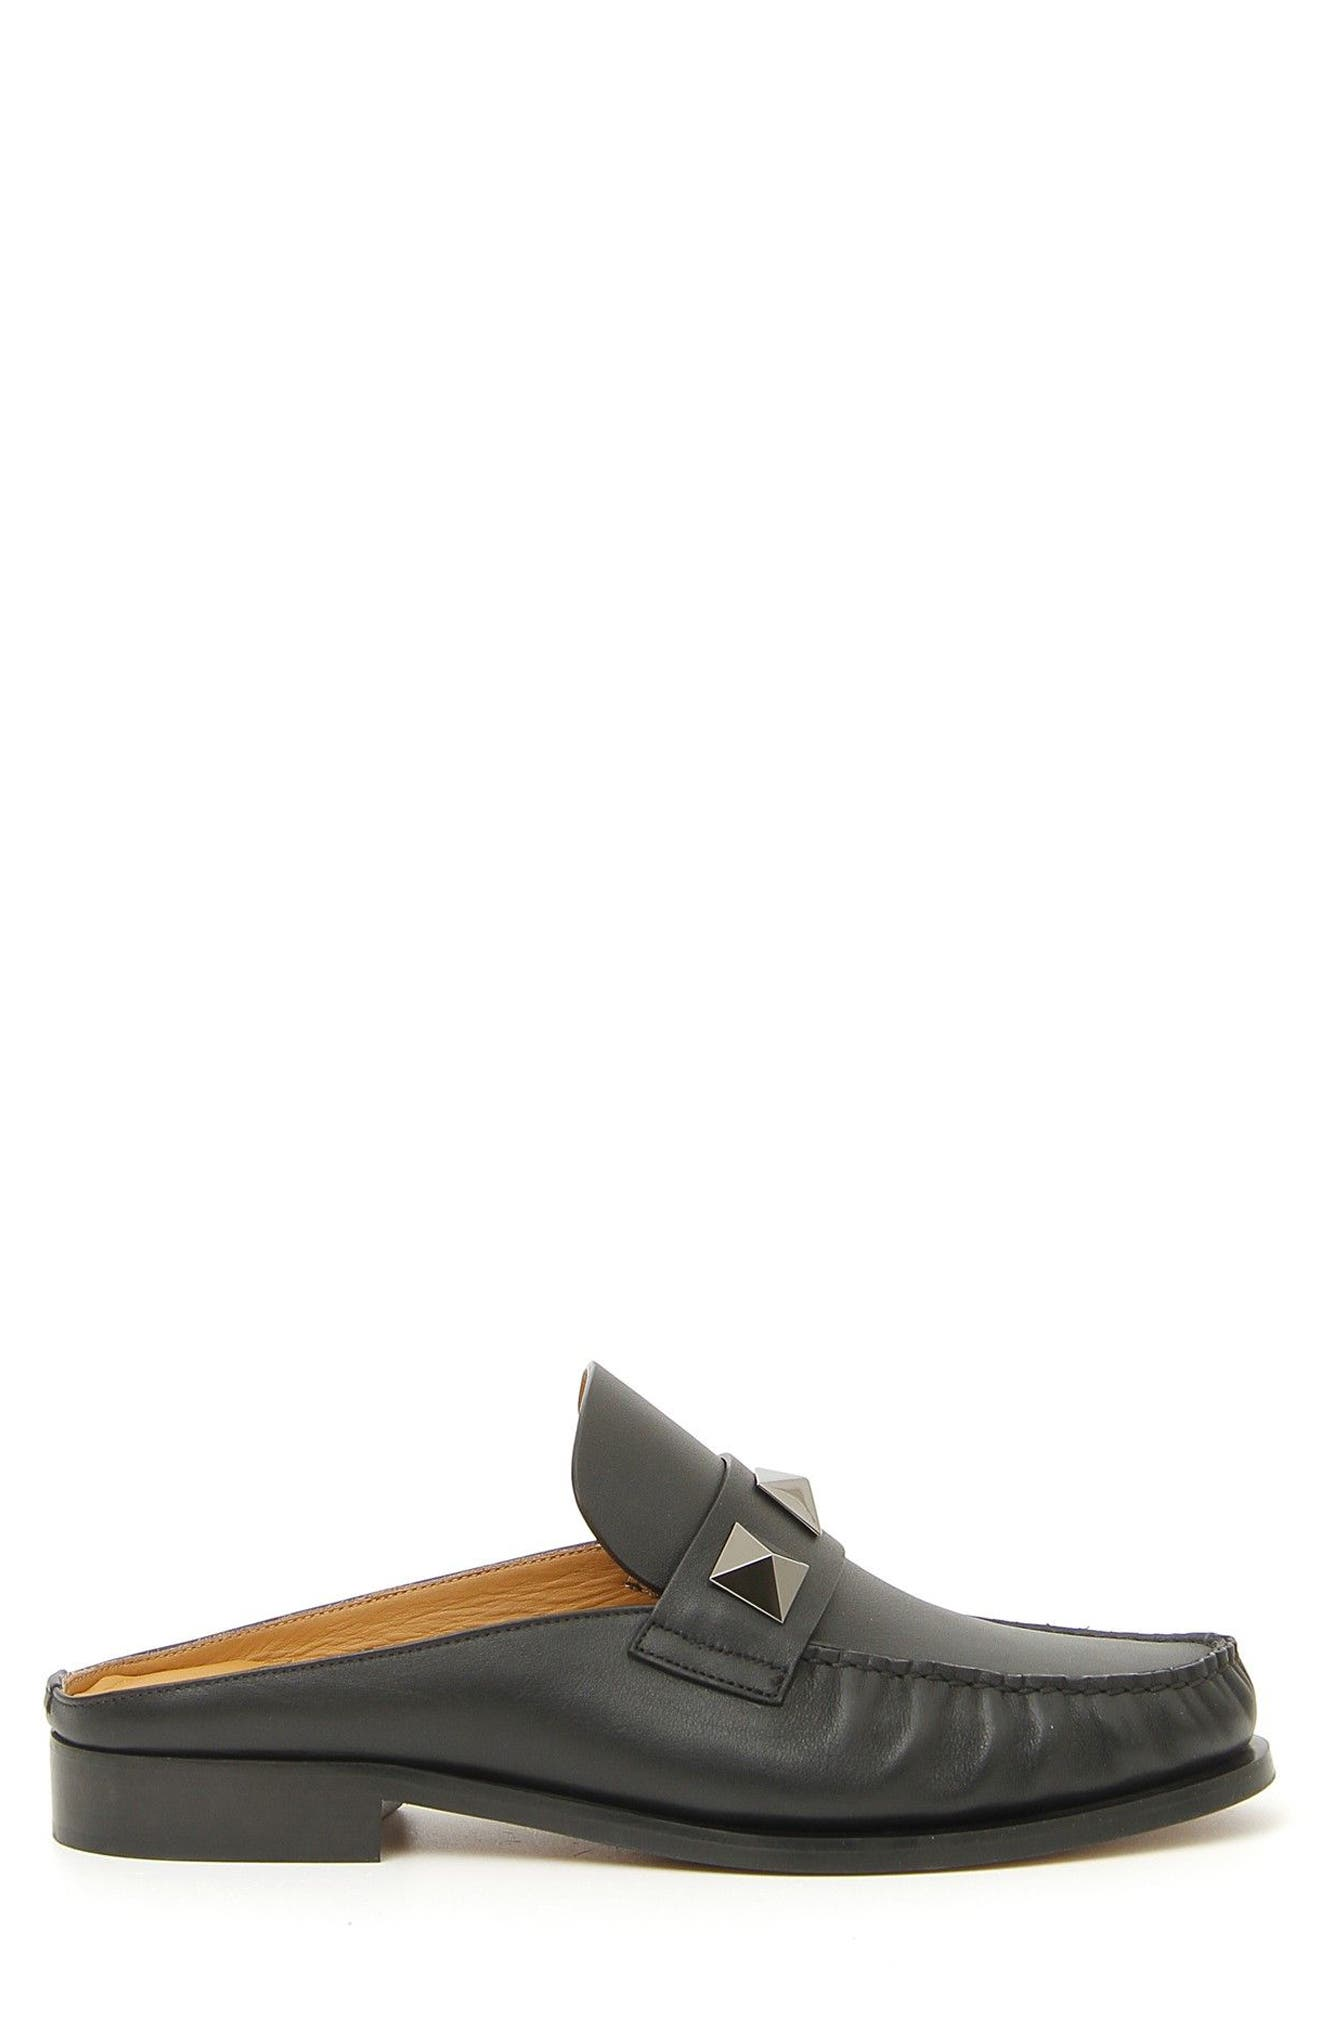 Lock Loafer Mule,                             Alternate thumbnail 4, color,                             Nero